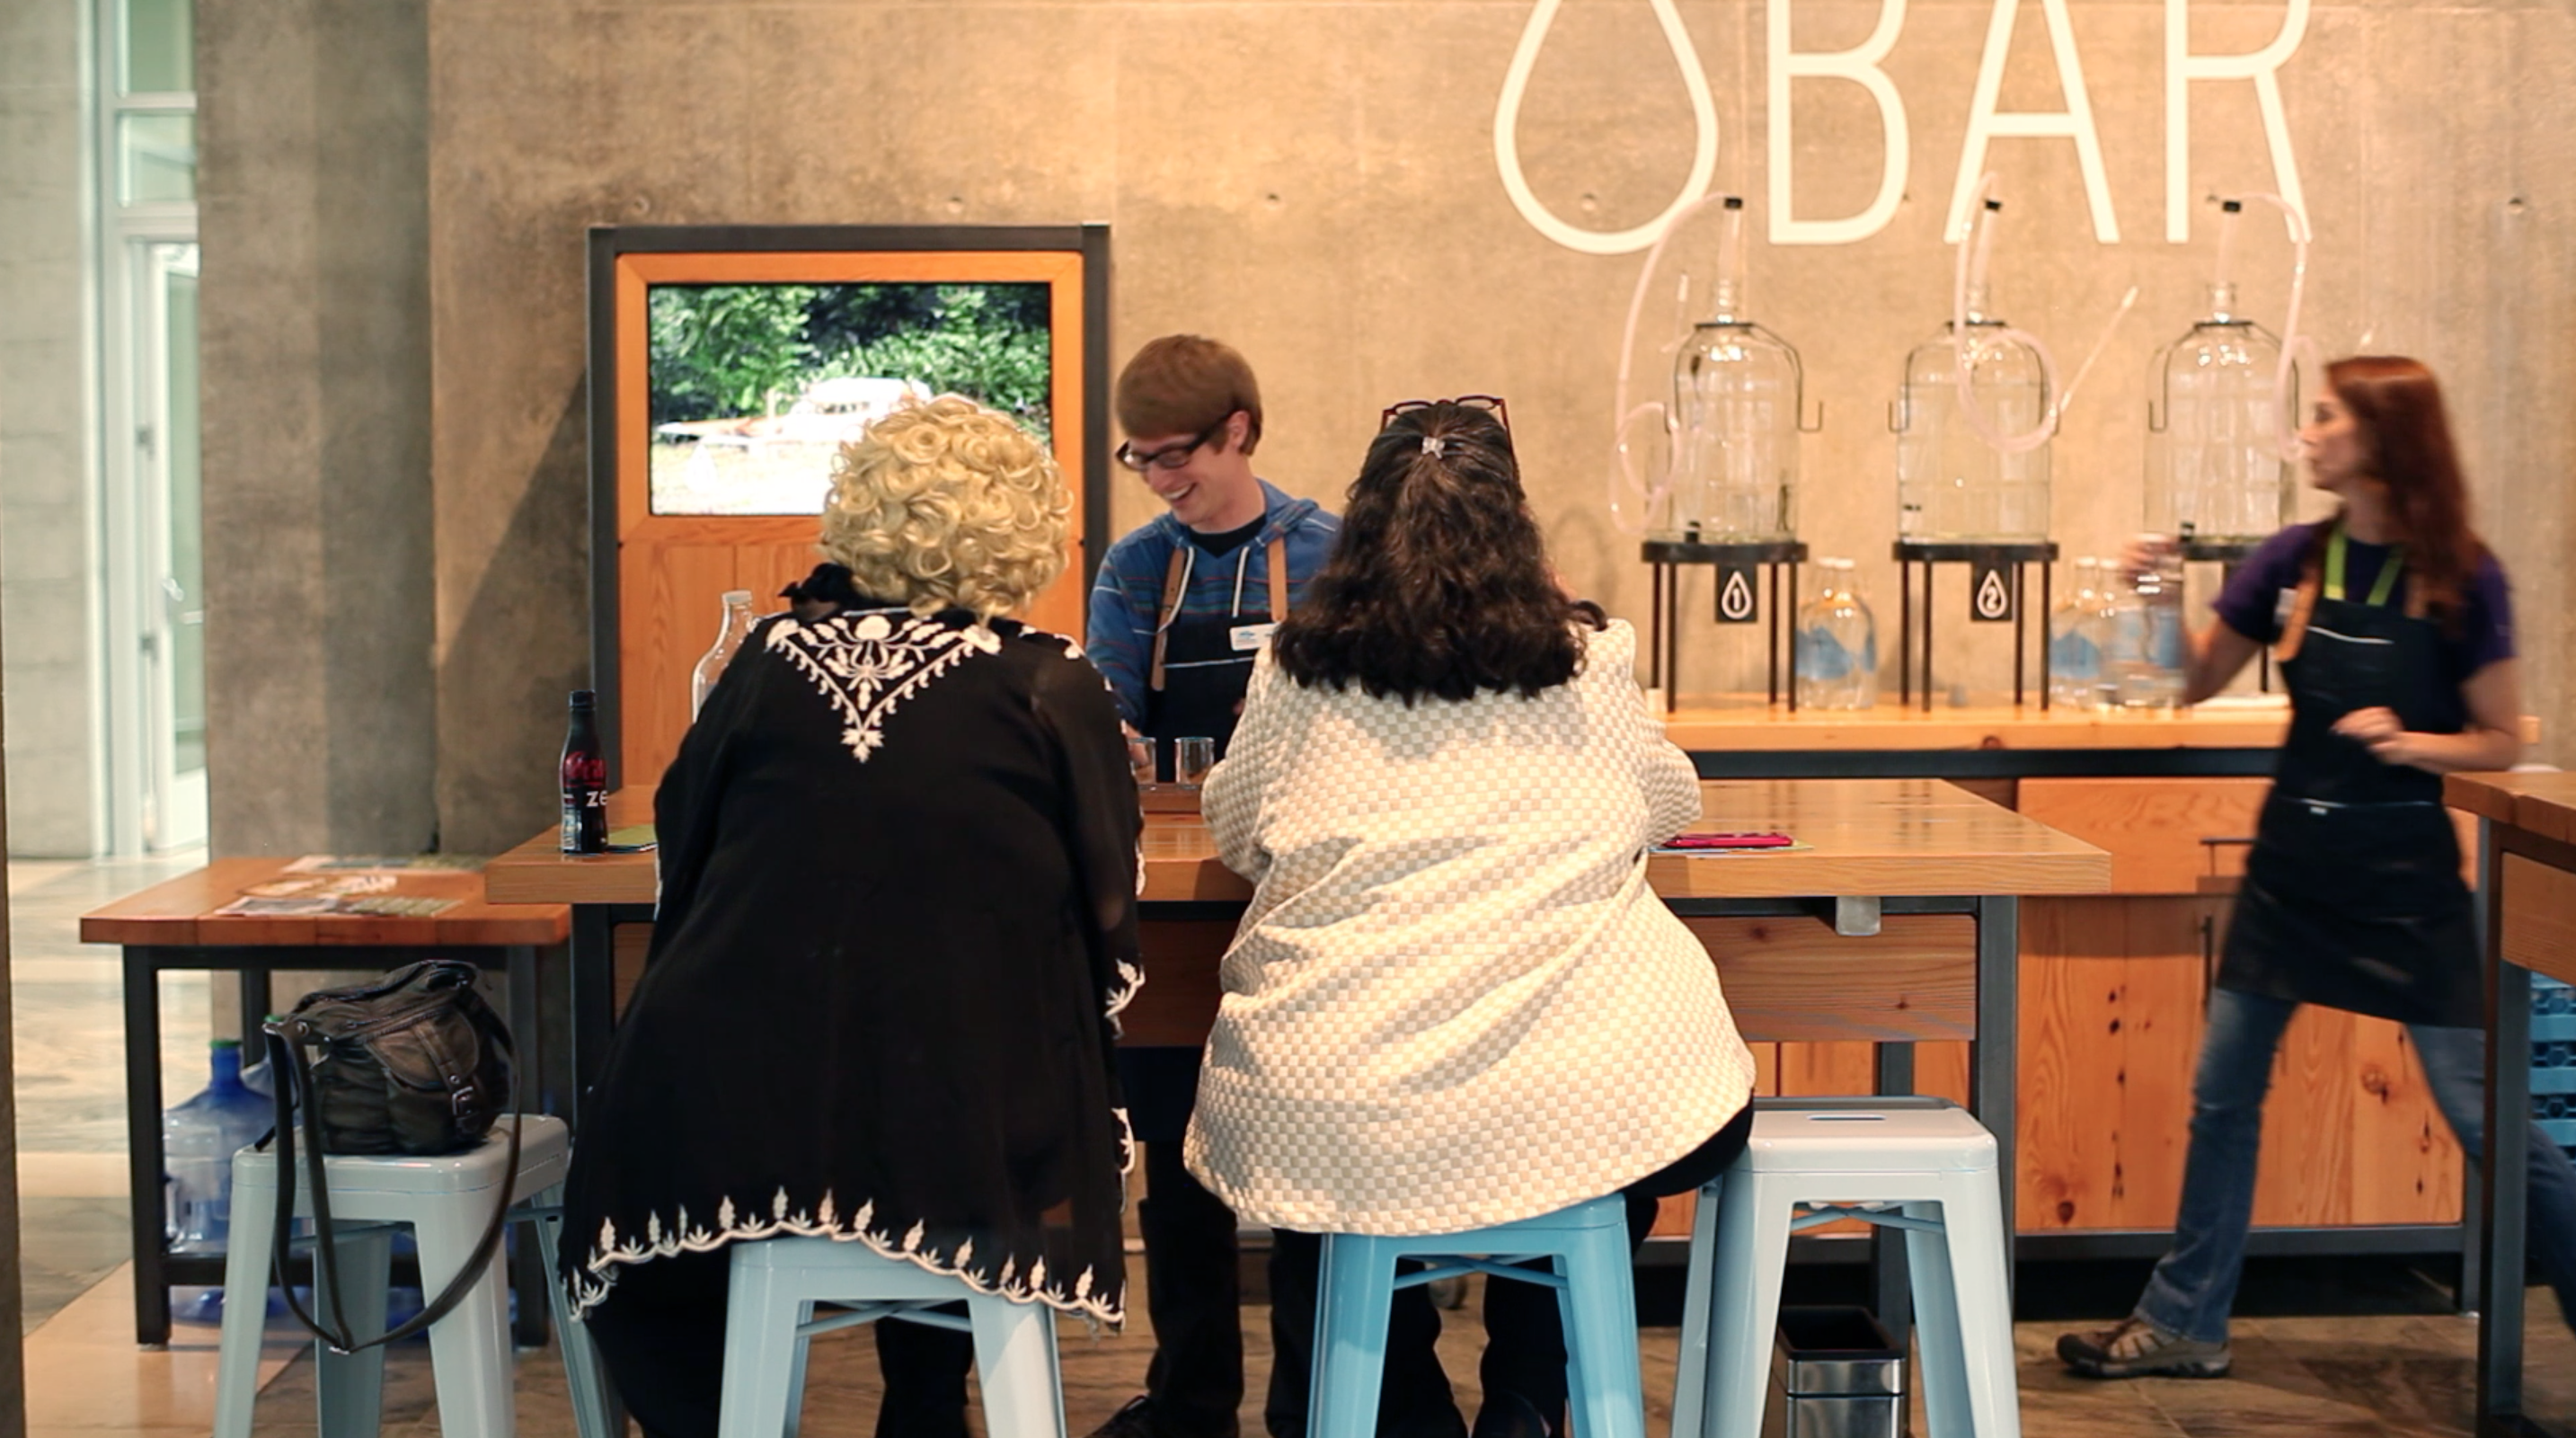 Students serving water at Water Bar installation, Crystal Bridges Museum in Bentonville, Arkansas.